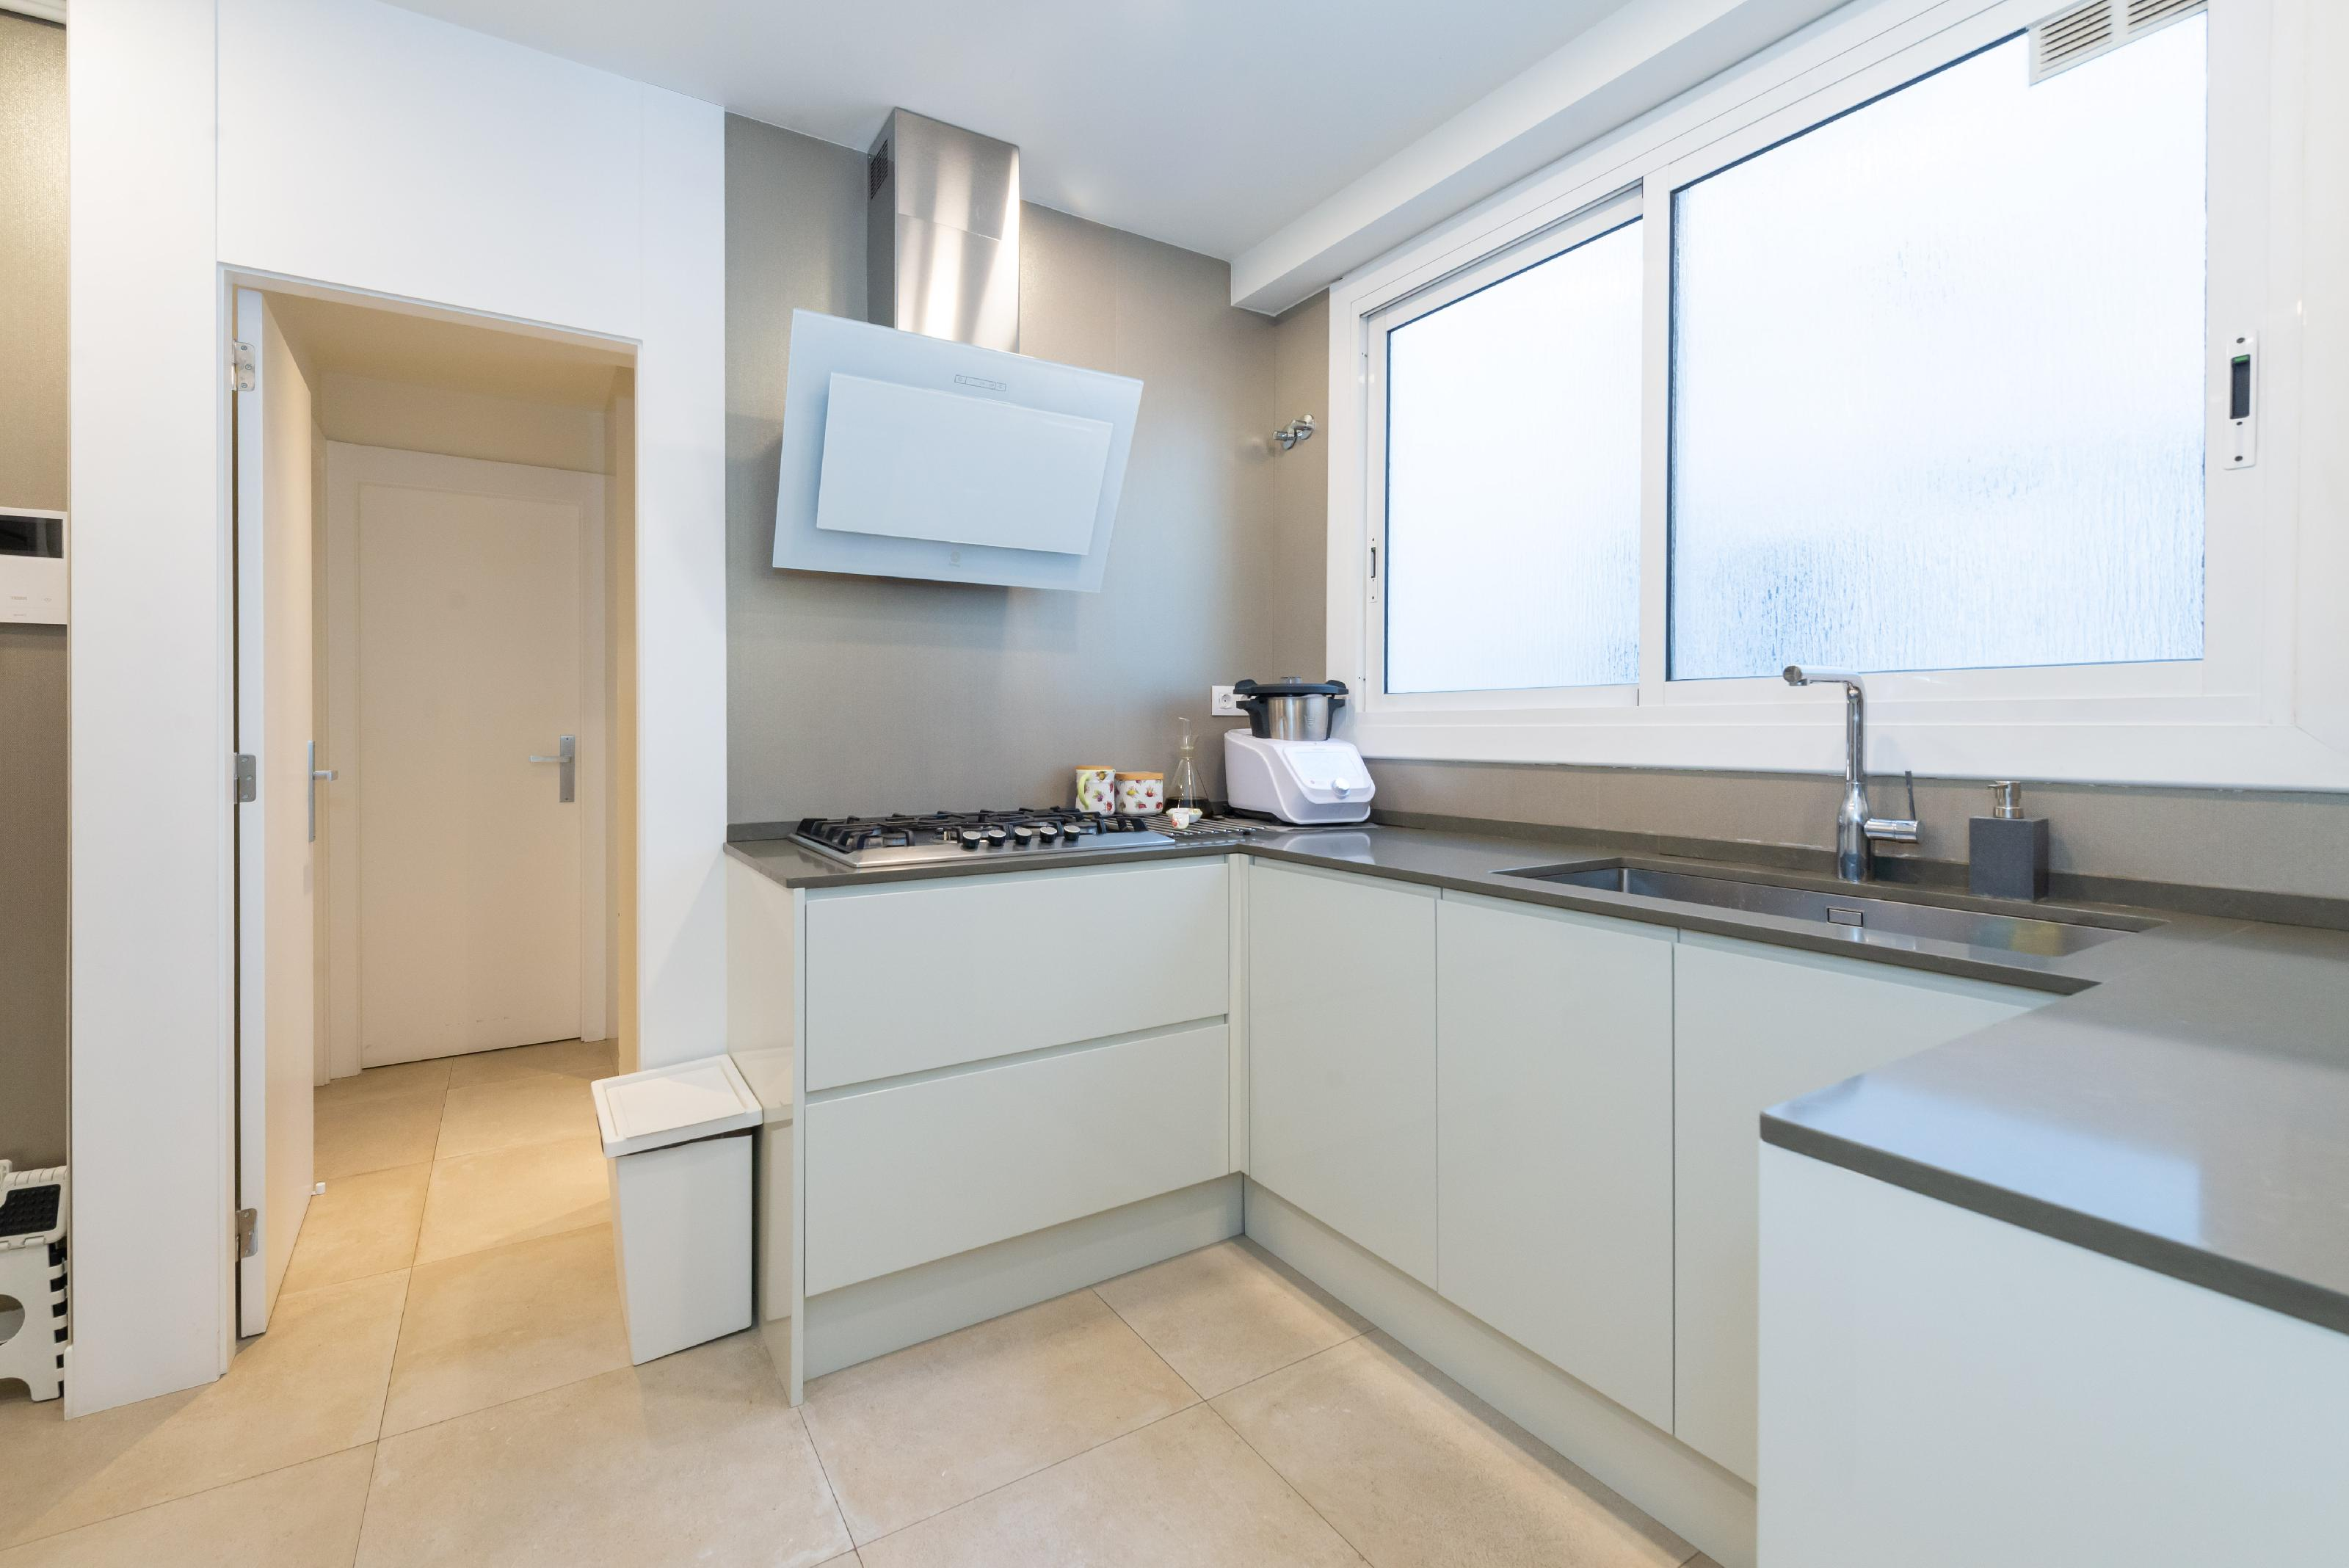 243891 Penthouse for sale in Sarrià-Sant Gervasi, Sant Gervasi-Galvany 15